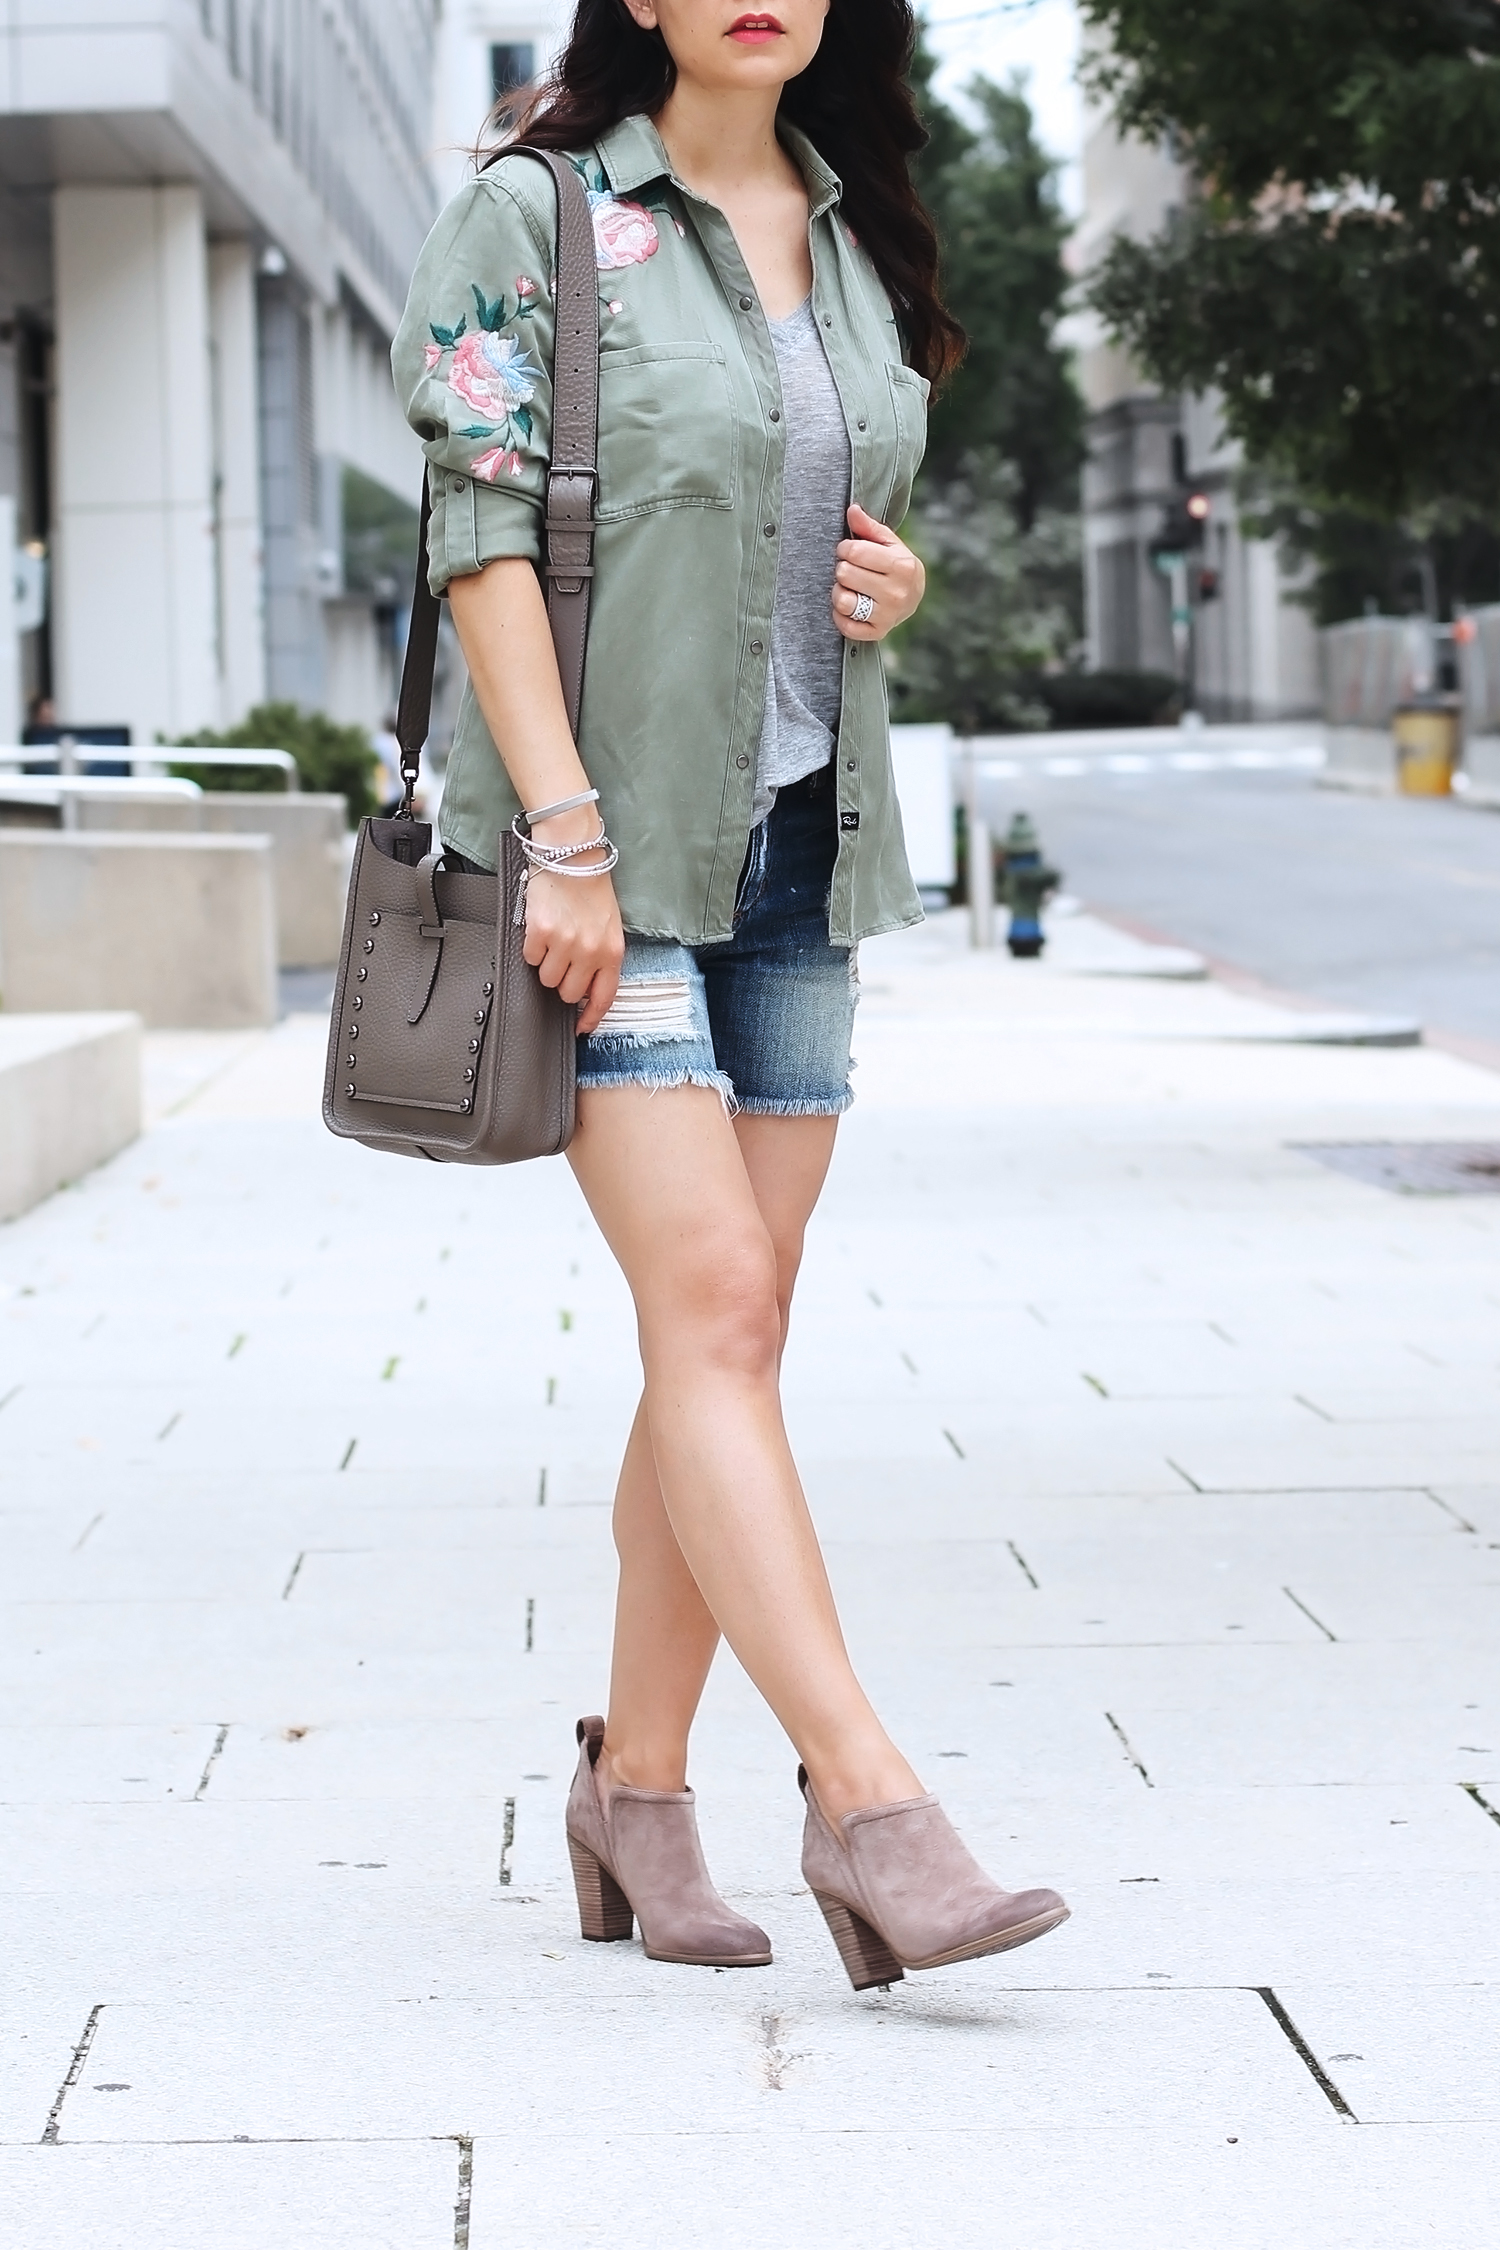 Ankle boots and cut-off shorts outfit